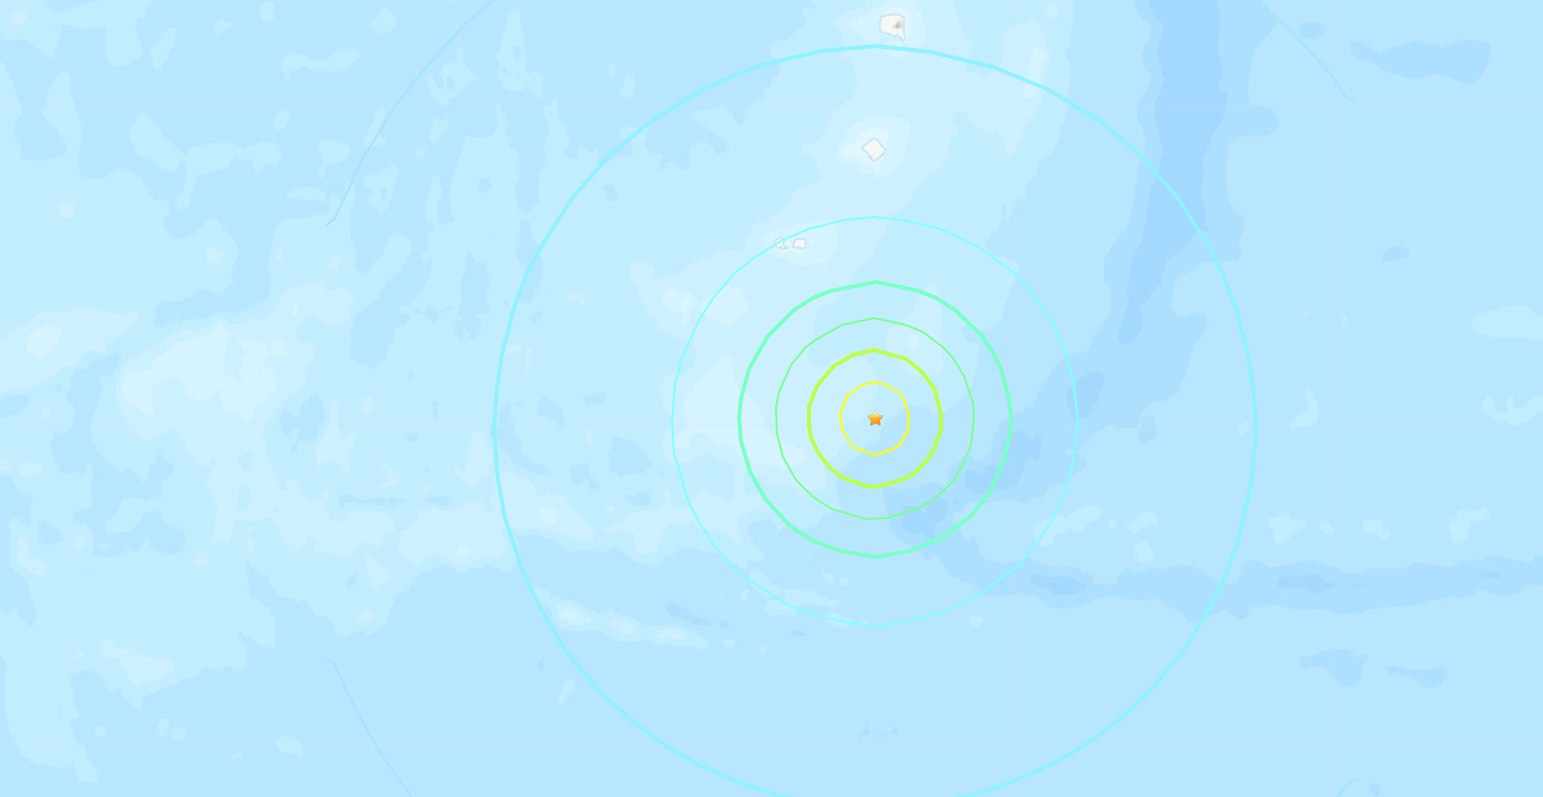 6.6-magnitude quake hits South Sandwich Islands -- USGS